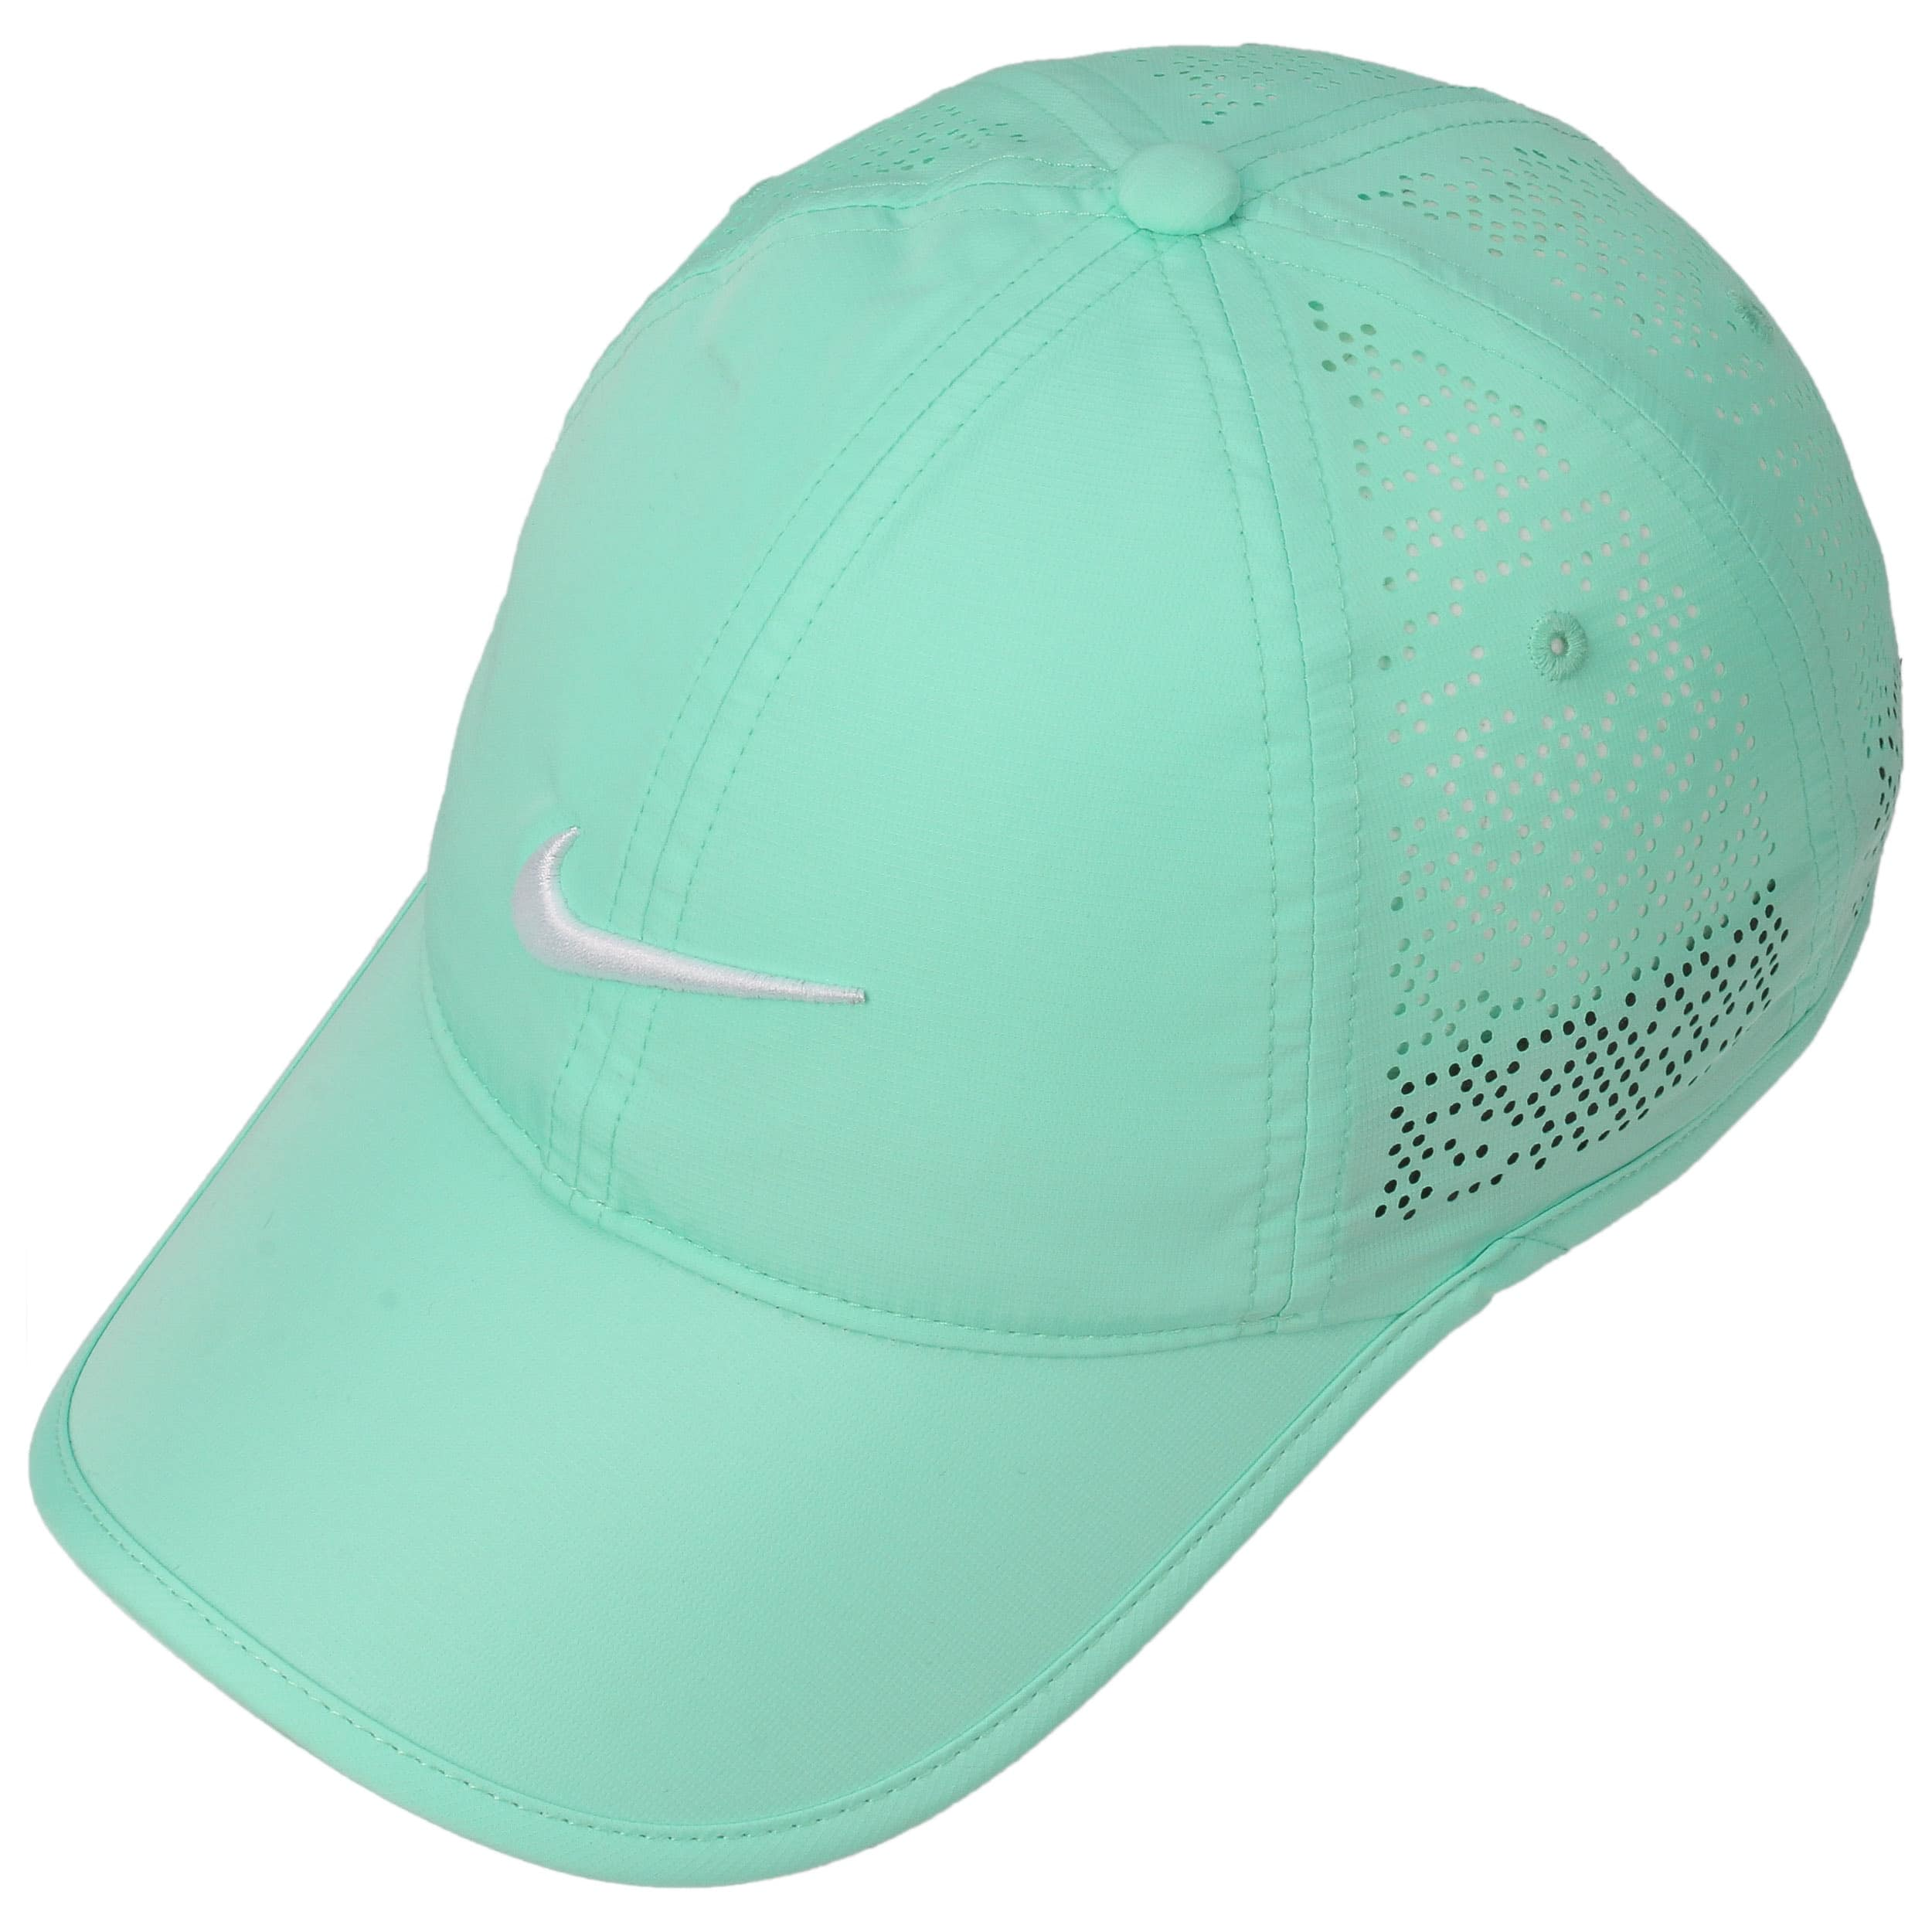 f53756b982a ... Swoosh Perforation Cap by Nike - turquoise 1 ...